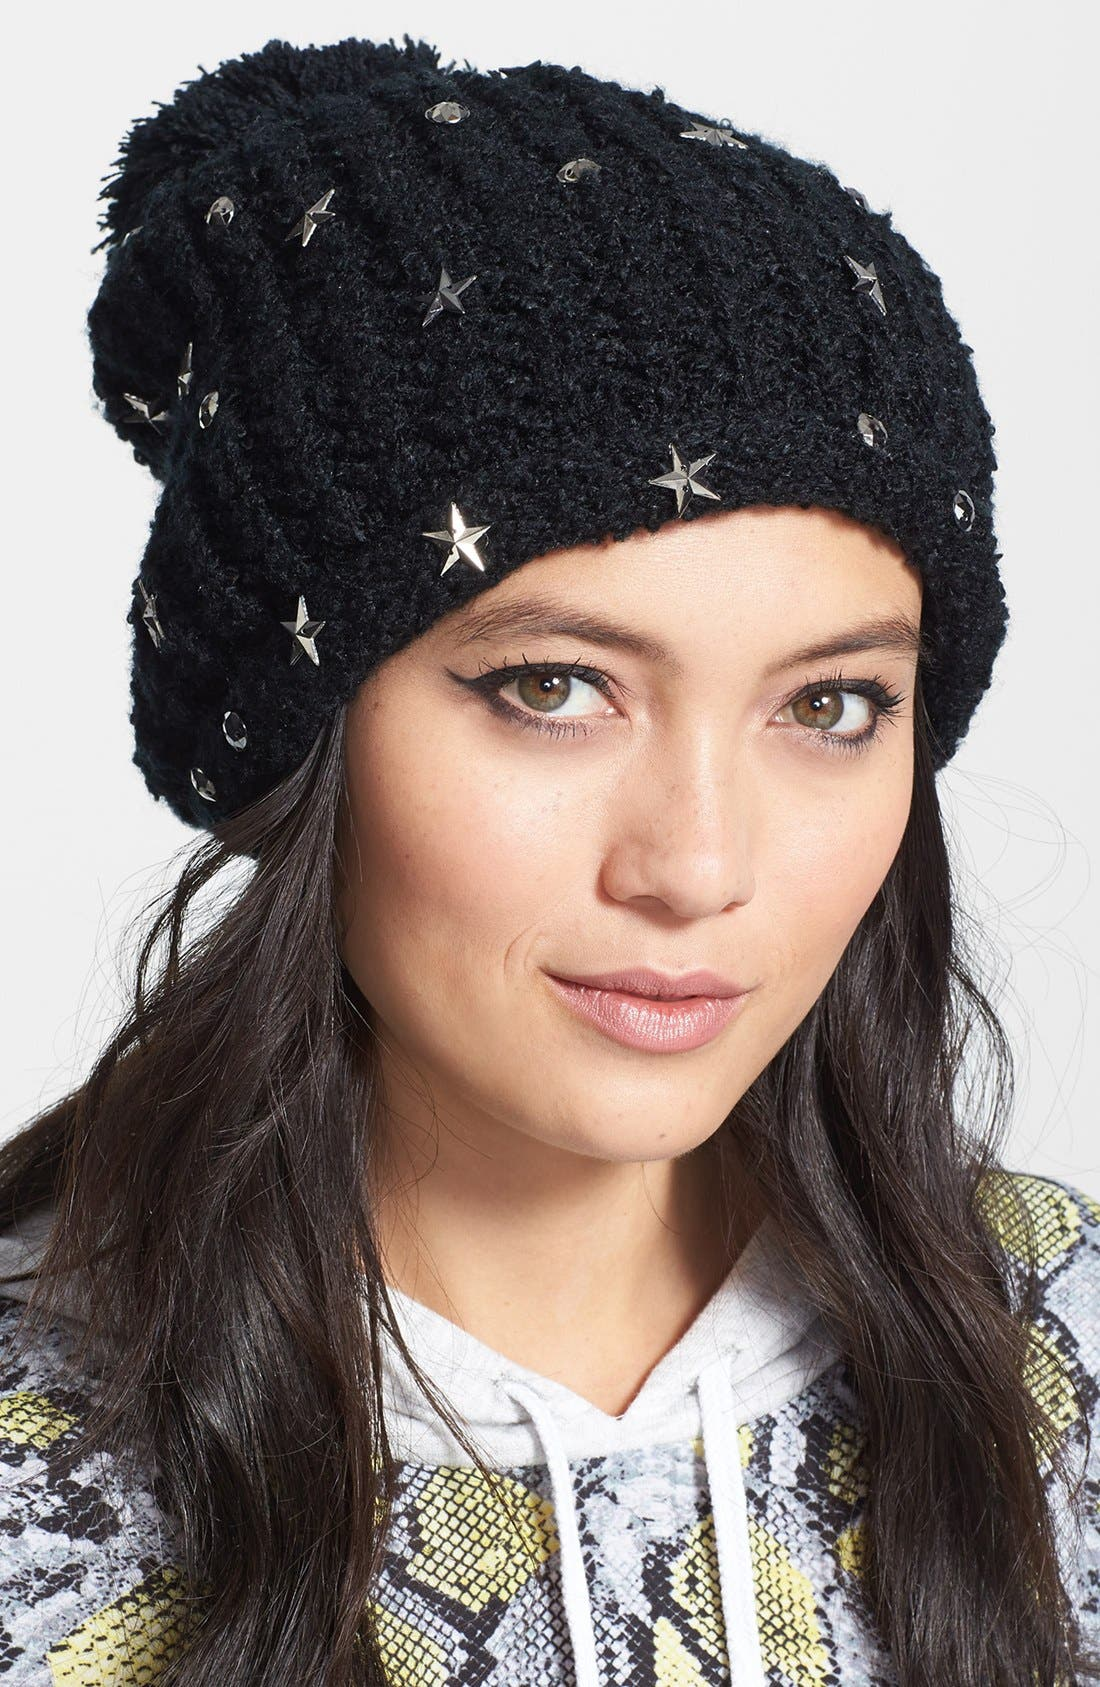 Alternate Image 1 Selected - Faubourg du Temple Embellished Pompom Beanie